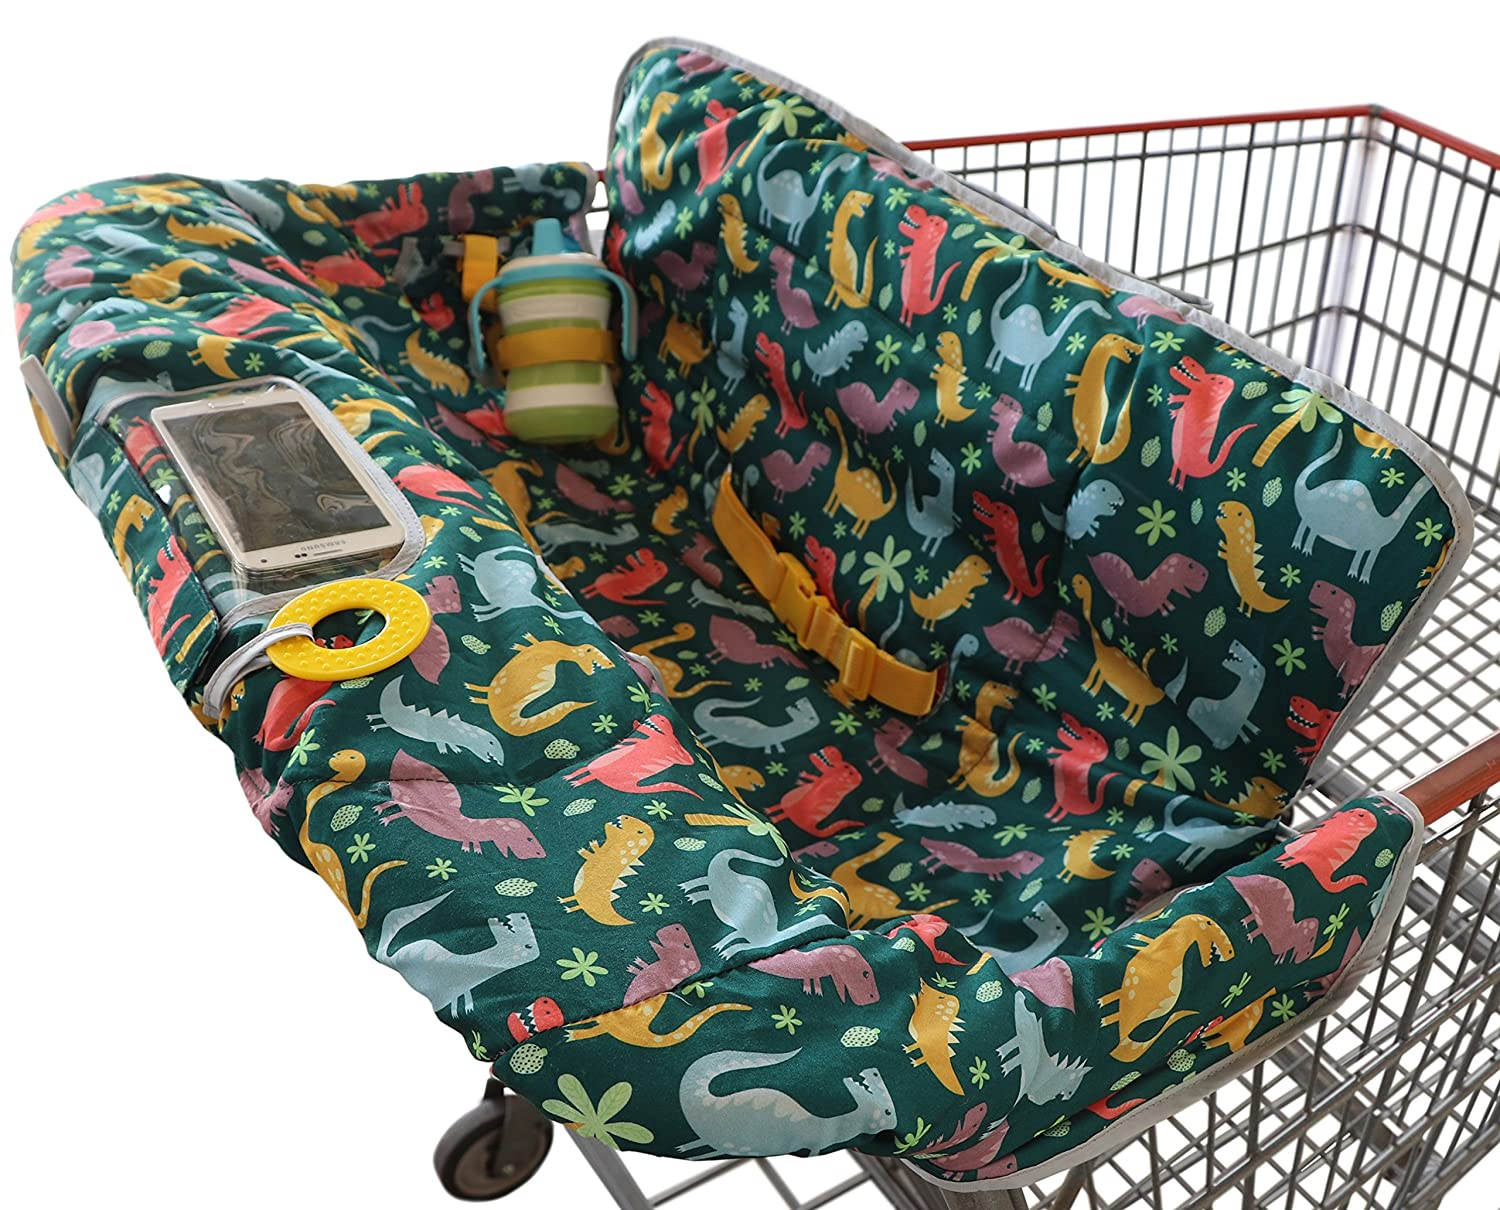 Shopping Cart Cover for Baby or Toddler | 2-in-1 High Chair Cover | Universal Fit for Boy or Girl | Includes Carry Bag | Machine Washable | Fits Restaurant Highchair (Dinosaurs) Suessie